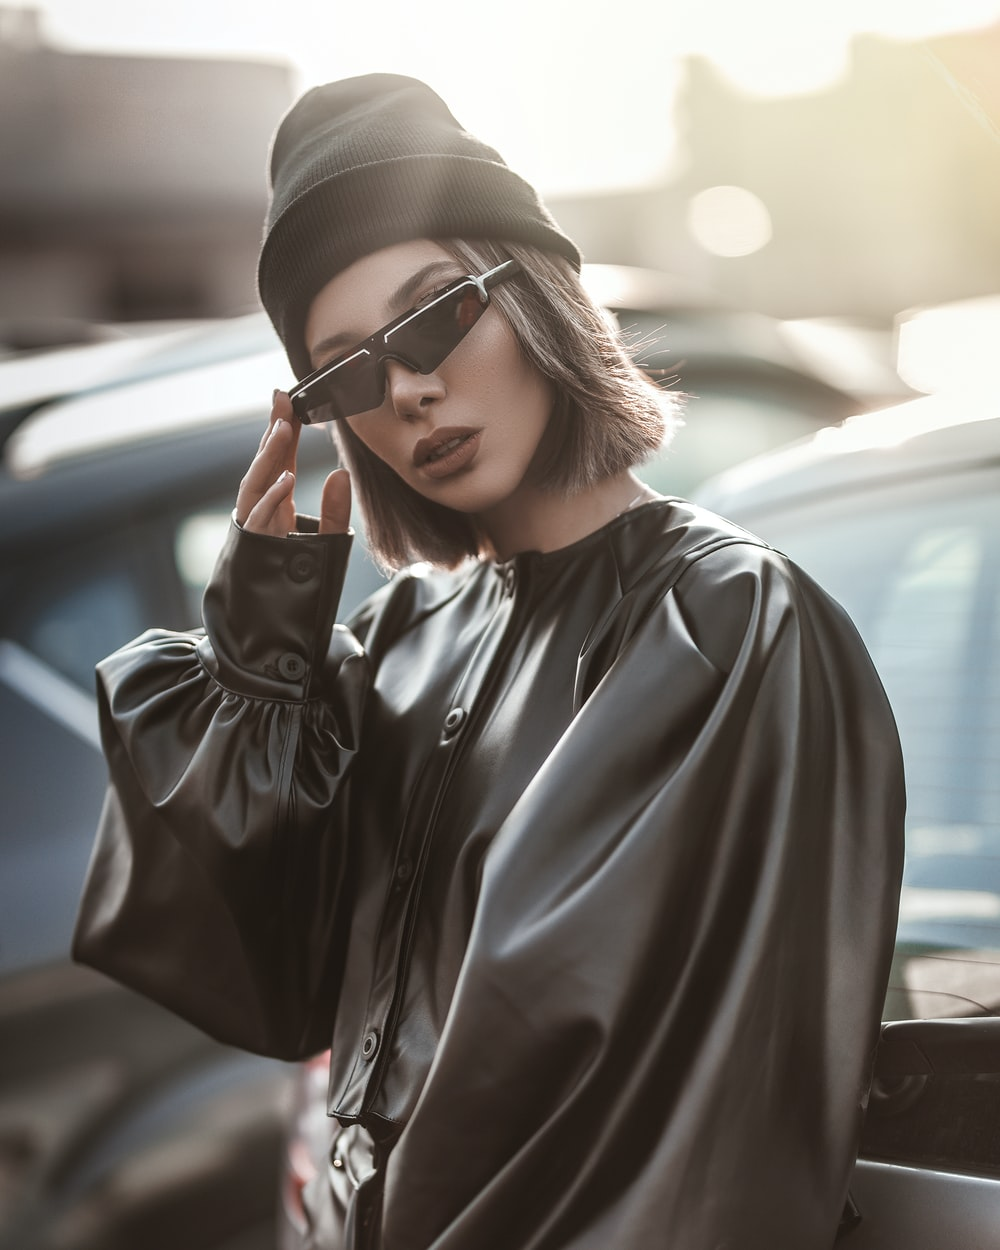 woman wearing black long-sleeved blouse and sunglasses standing near vehicle